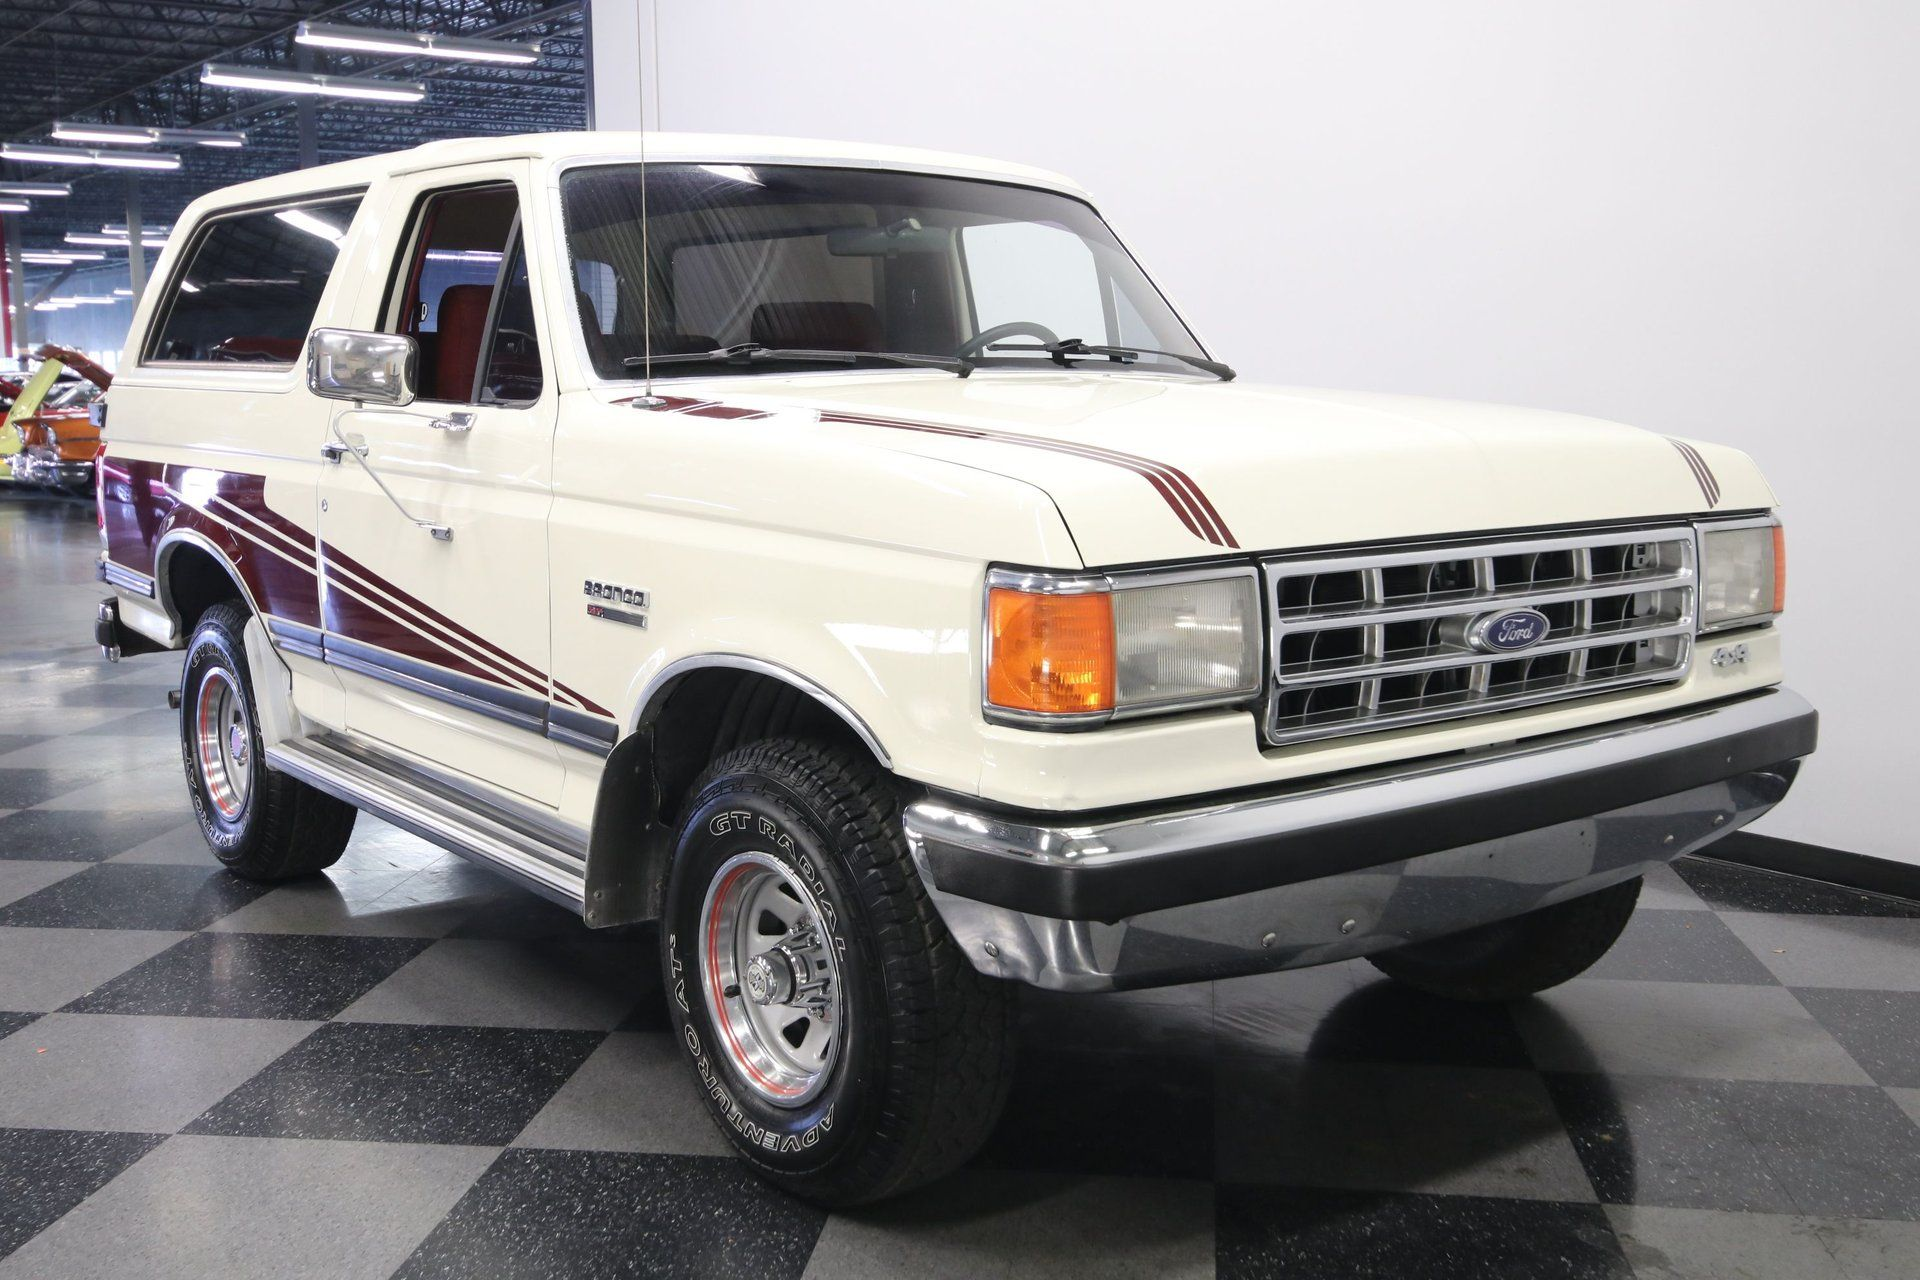 1988 Ford Bronco XLT Has Under 100K Miles